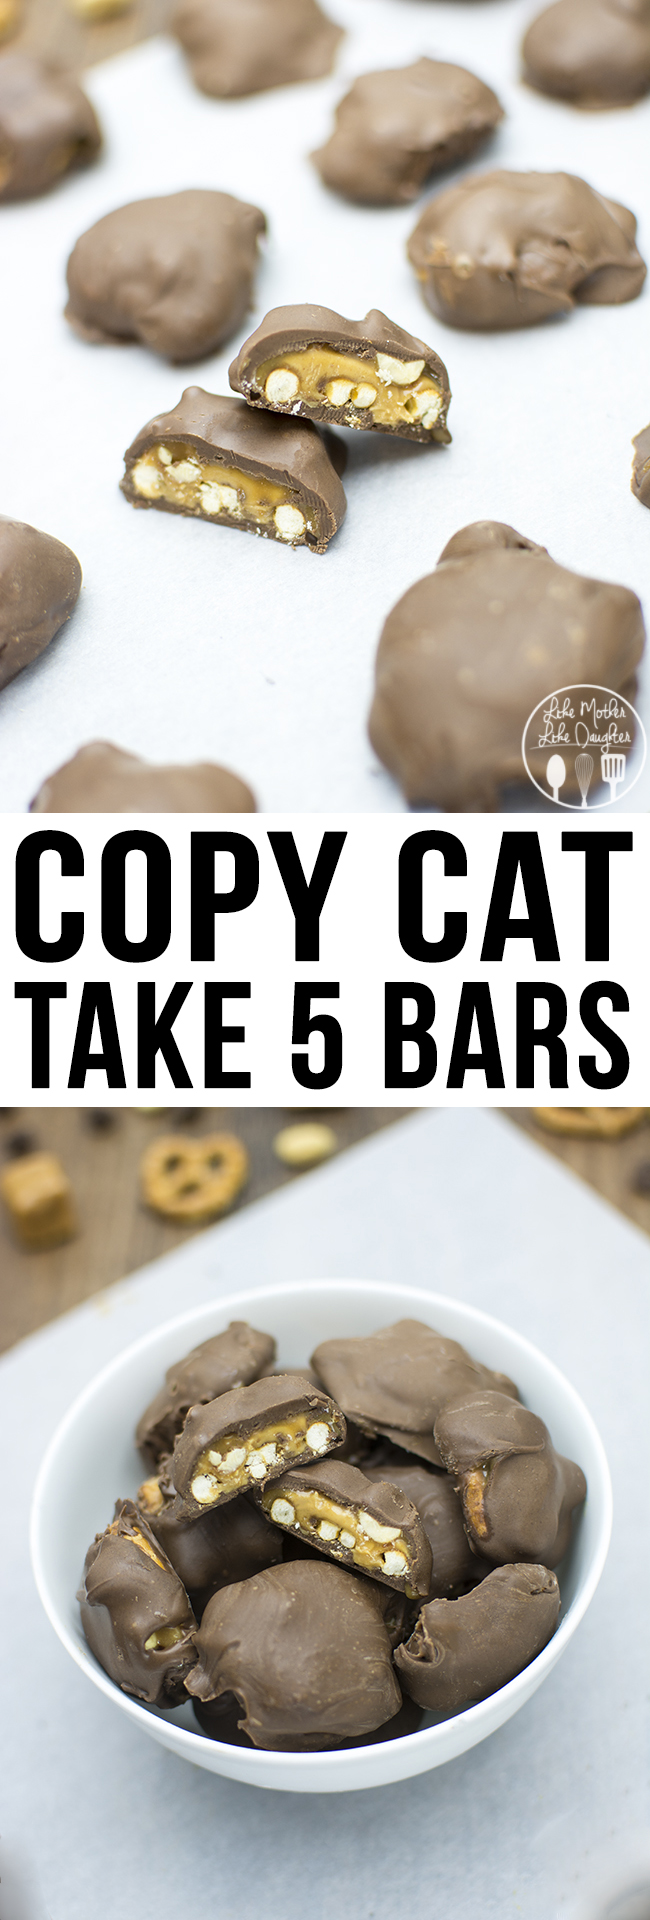 Copy Cat Take 5 Bars - These homemade take 5 bars are just as good as the real thing. The great flavors of smooth and creamy peanut butter and caramel, salty and crunchy pretzels and peanuts all covered in delicious chocolate. You won't want to miss these delicious homemade candy bars!